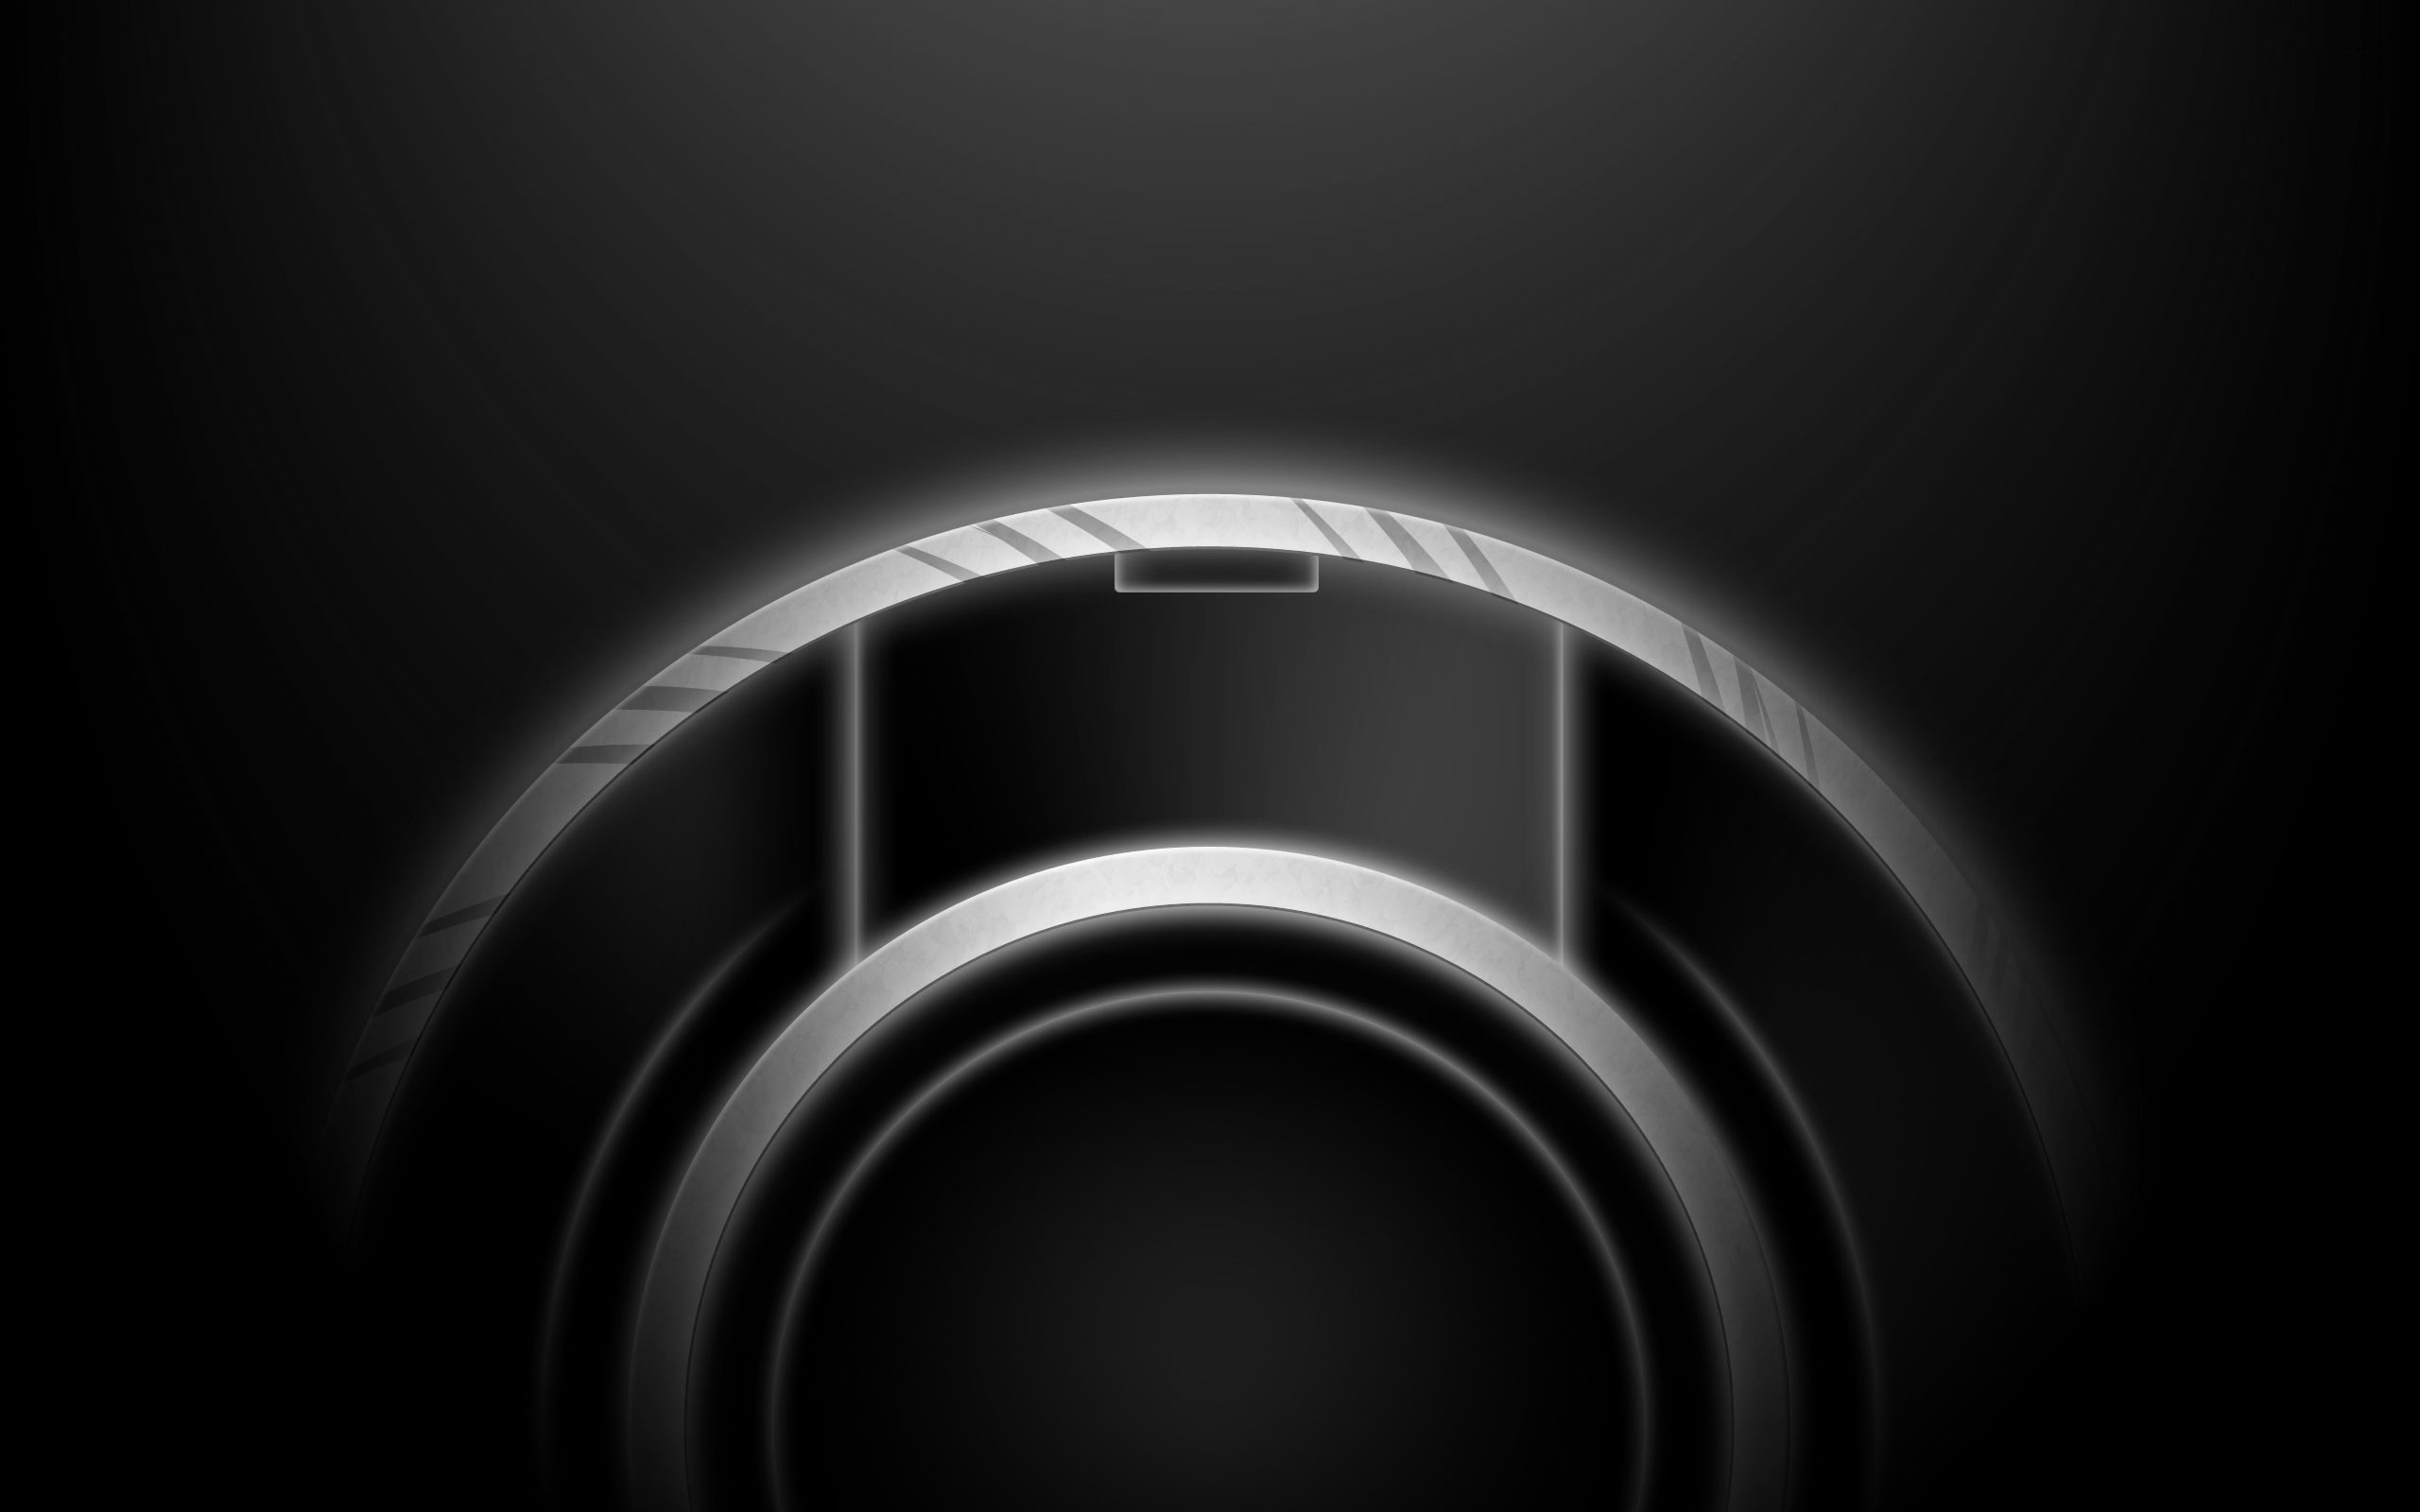 Grey-Disk-HD-Wallpaper